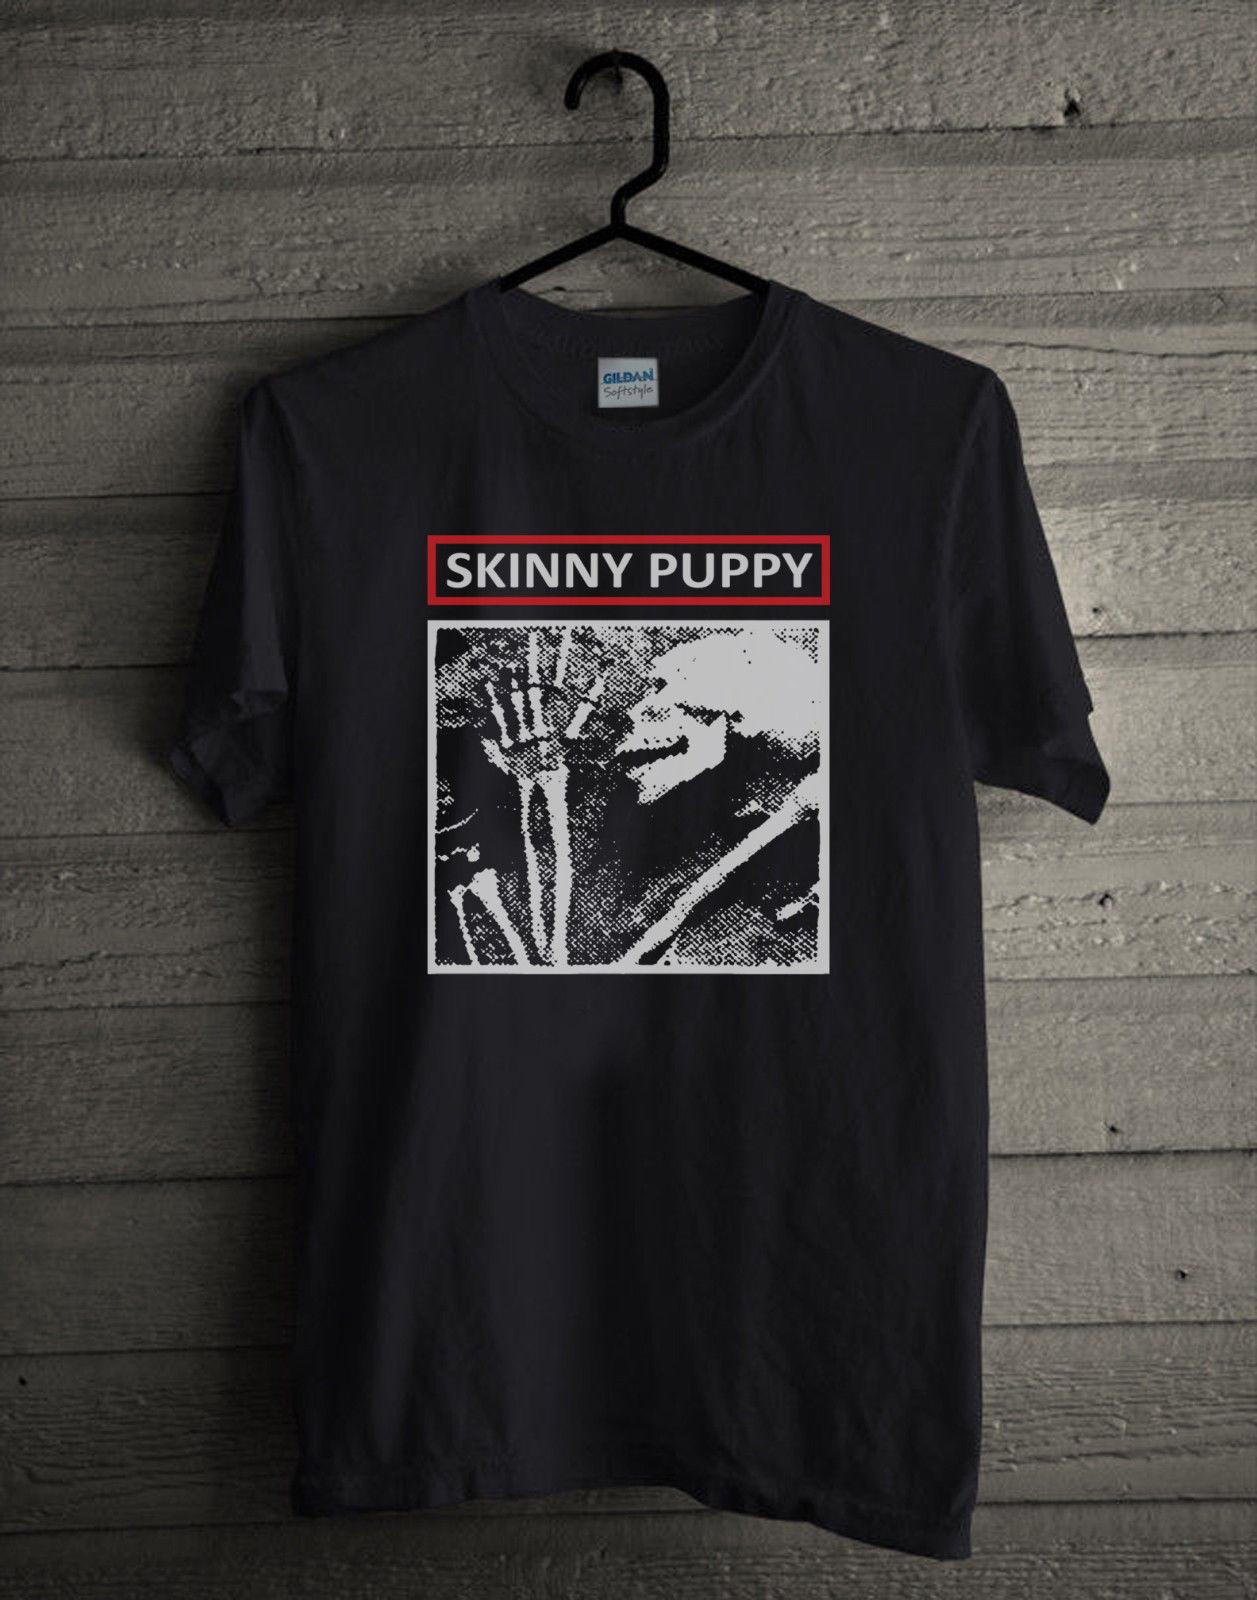 73fe61727f34 Vintage T Shirt Skinny Puppy Ministry Depeche 4AD Goth Siouxsie Reprint  Funny Unisex Casual Top T Shirts Vintage T Shirts Sale From  Countrysidelocks, ...